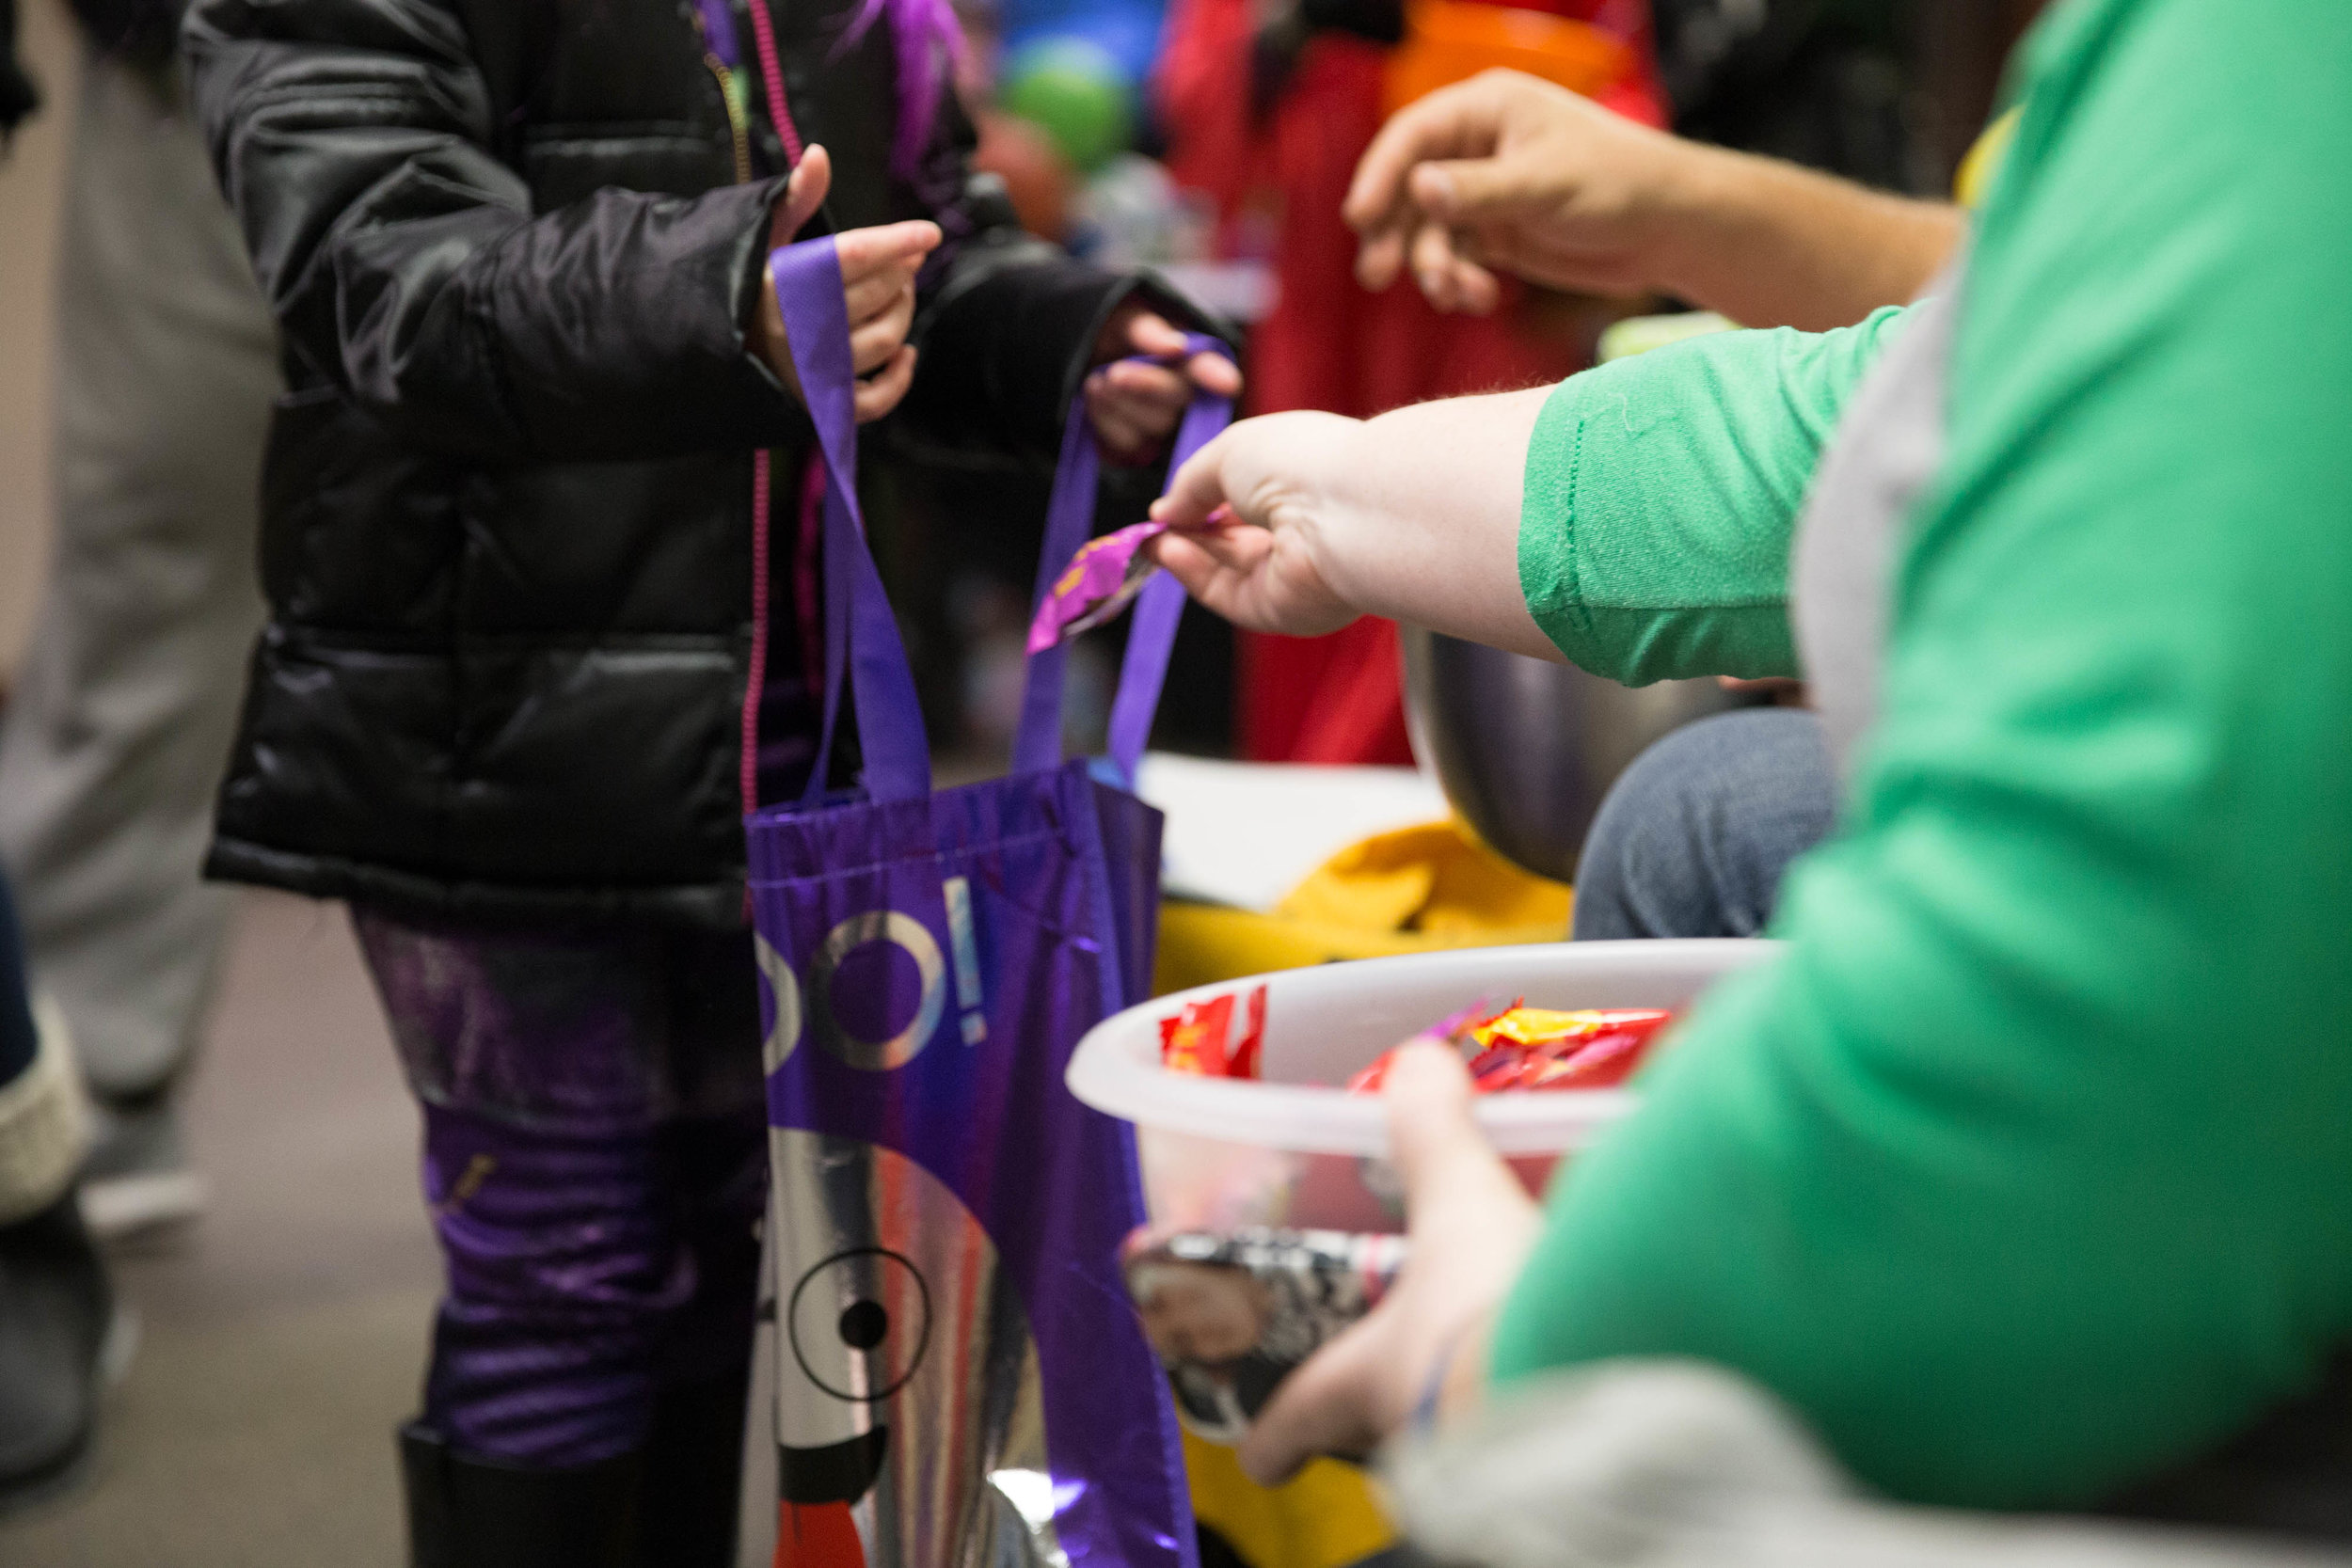 3. Volunteering - We need your help to make Treat Street as fun and exciting as we possibly can! There are several ways you can serve at the event, including decorating an area of the building, passing out candy, and more.Interested in serving? Let us know.